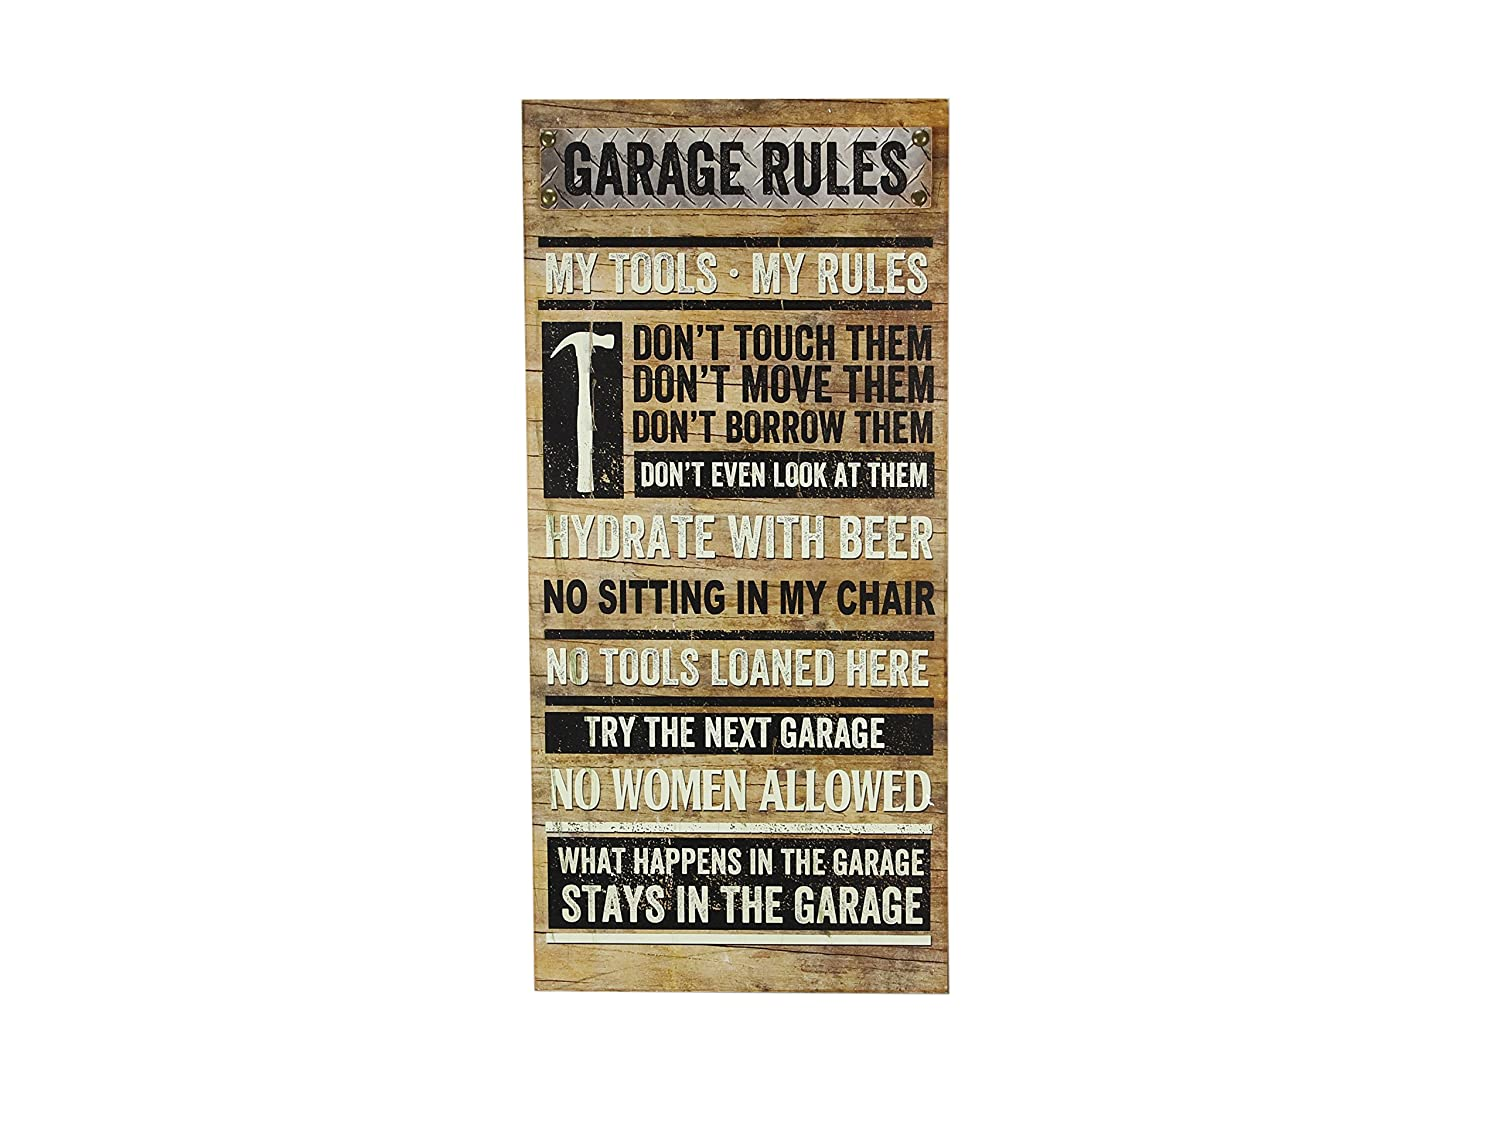 Youngs Inc Wood Garage Rules Wall Sign 19.25-Inch